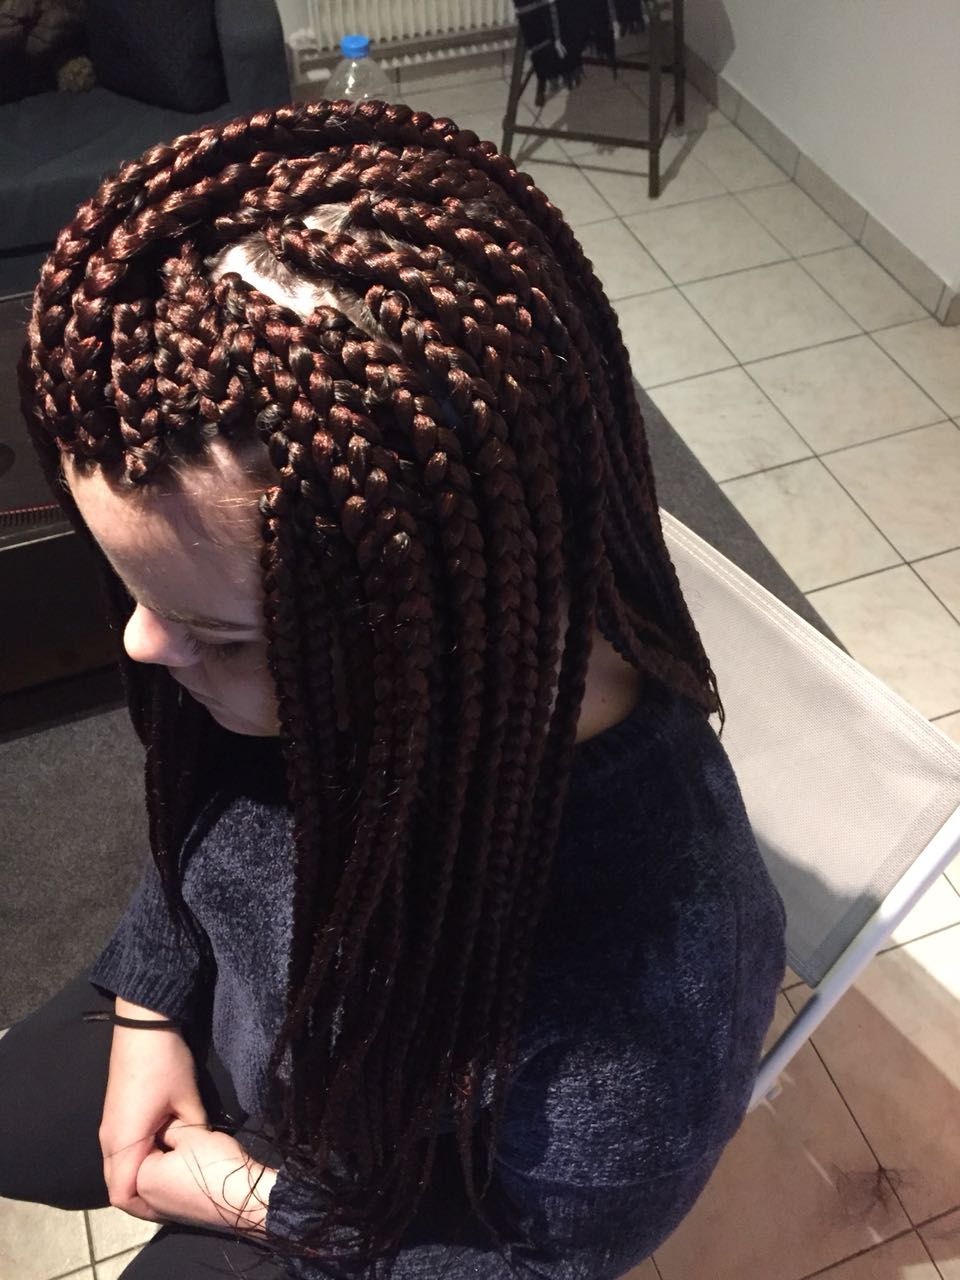 salon de coiffure afro tresse tresses box braids crochet braids vanilles tissages paris 75 77 78 91 92 93 94 95 KKVEWTUX